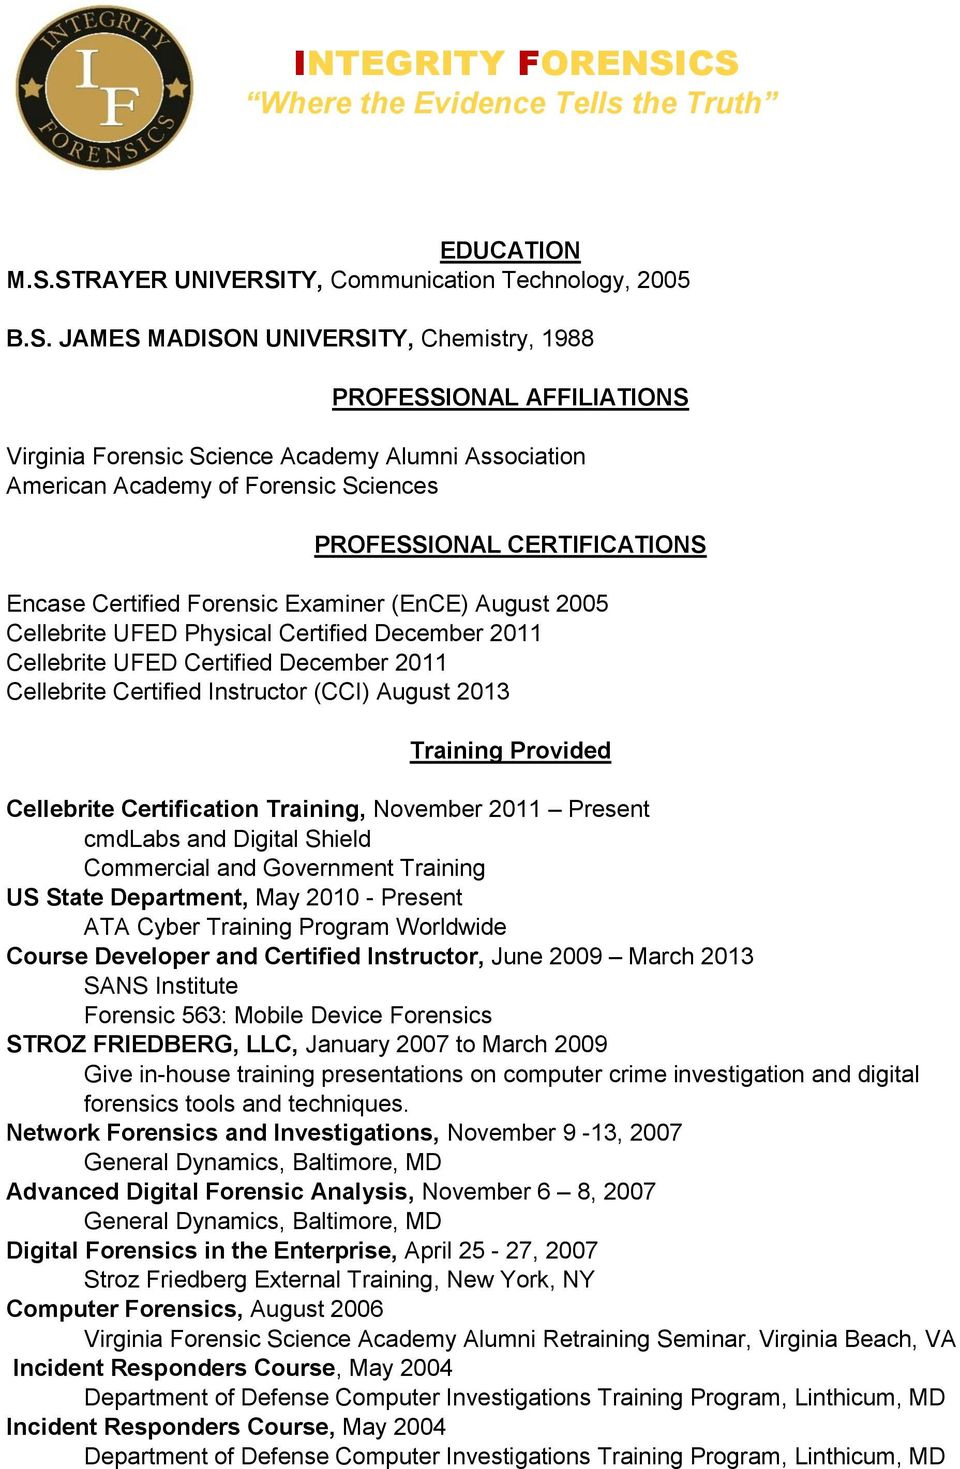 Forensic Sciences PROFESSIONAL CERTIFICATIONS Encase Certified Forensic Examiner (EnCE) August 2005 Cellebrite UFED Physical Certified December 2011 Cellebrite UFED Certified December 2011 Cellebrite